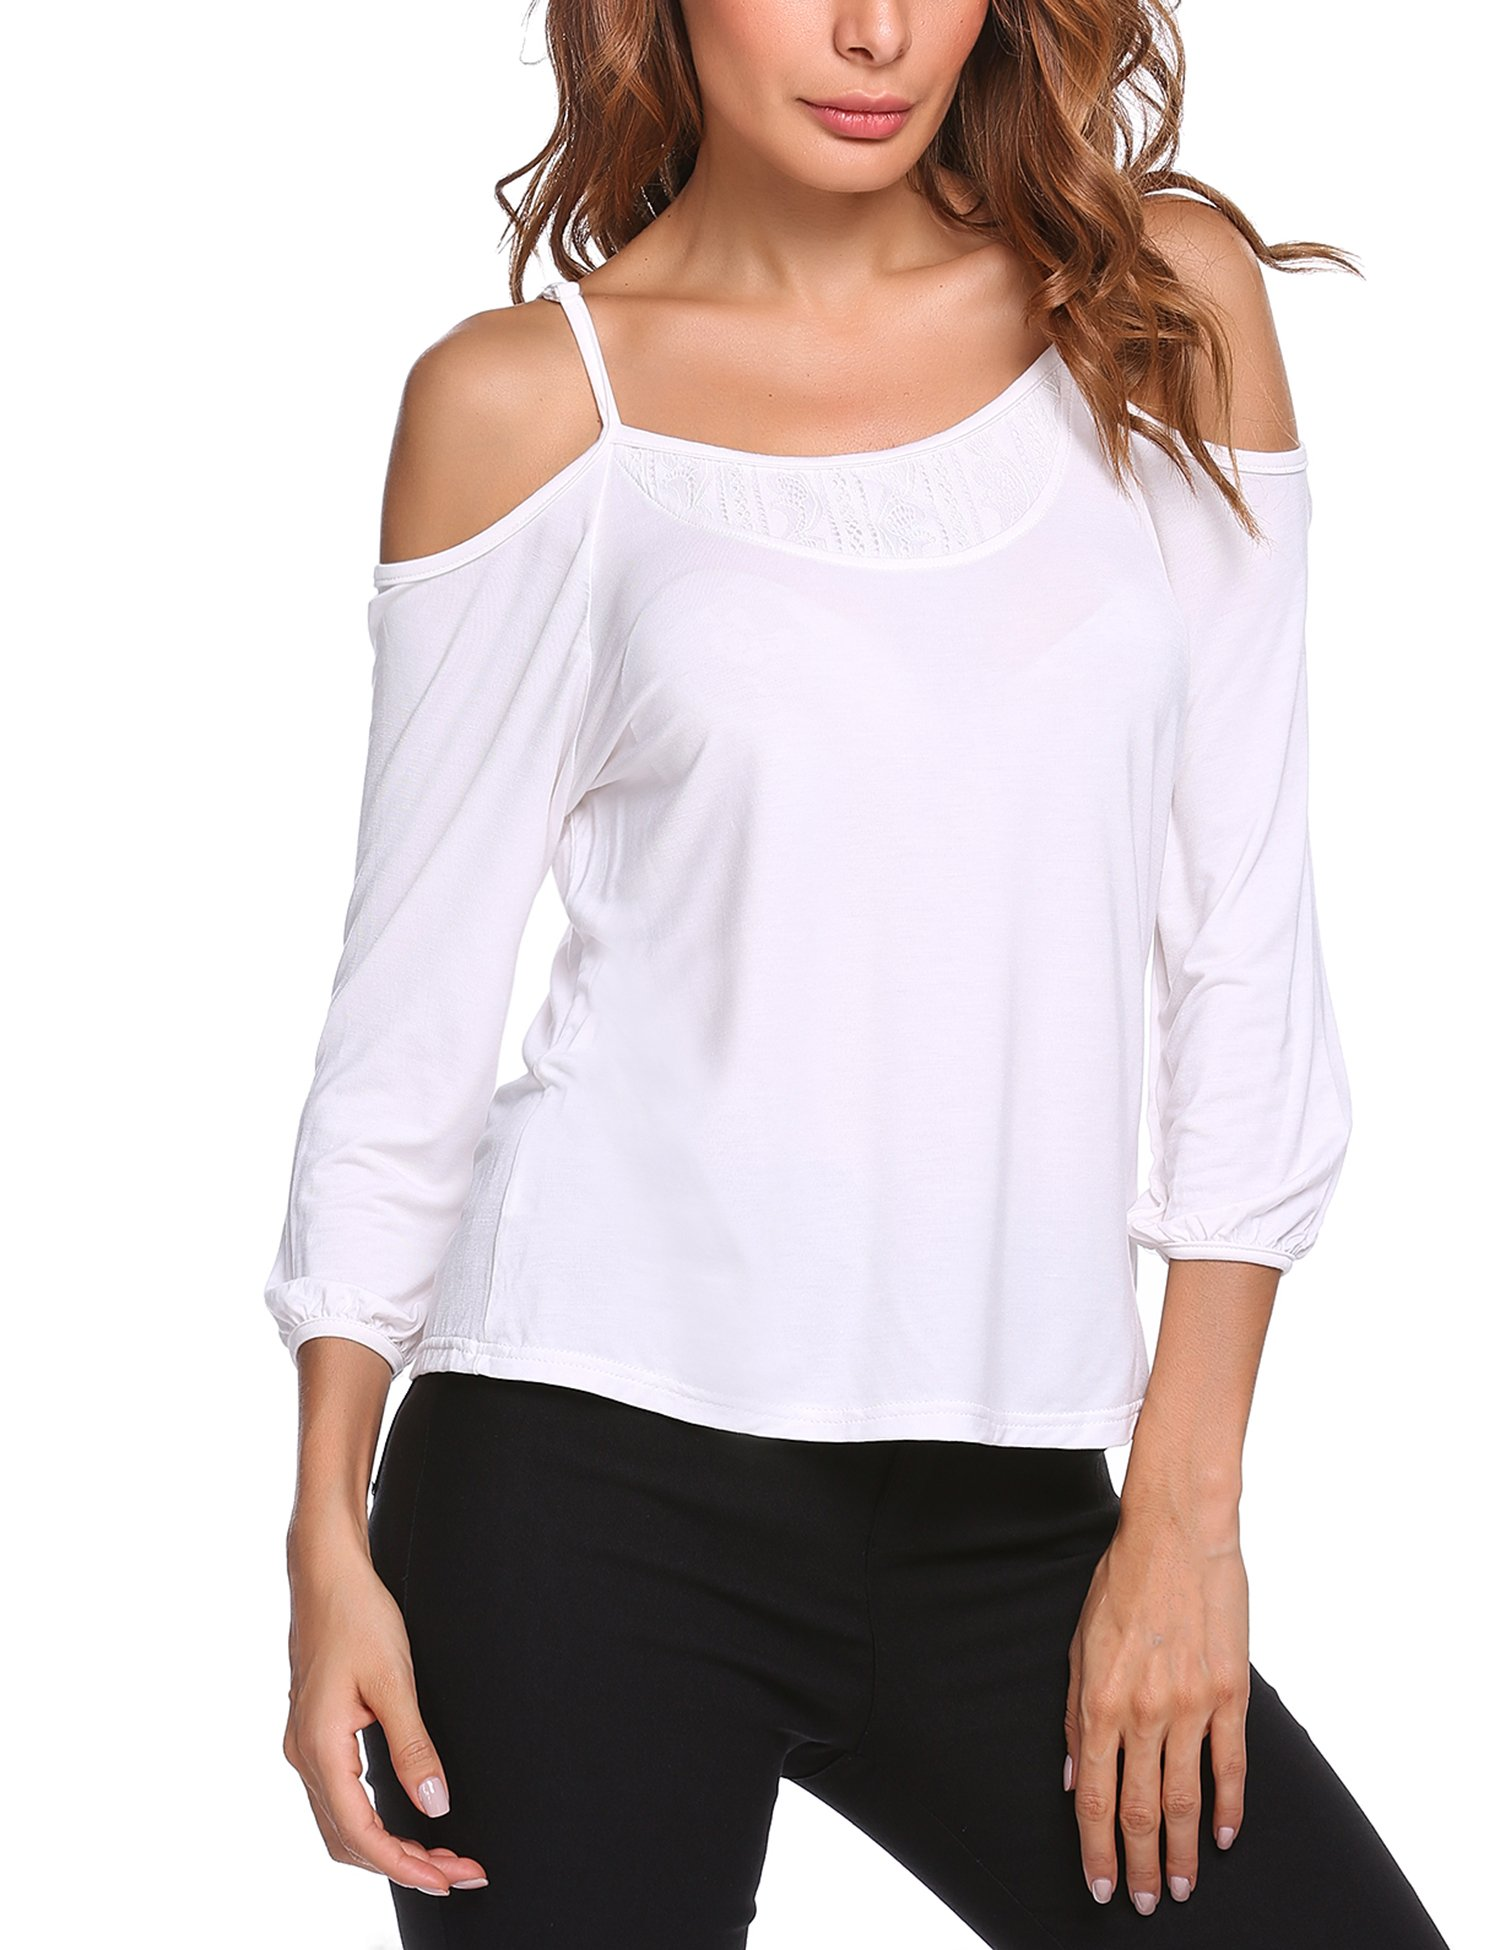 Womens Plus Size Scoop Neck Cold Shoulder 3/4 Sleeve Loose Blouse Tops White